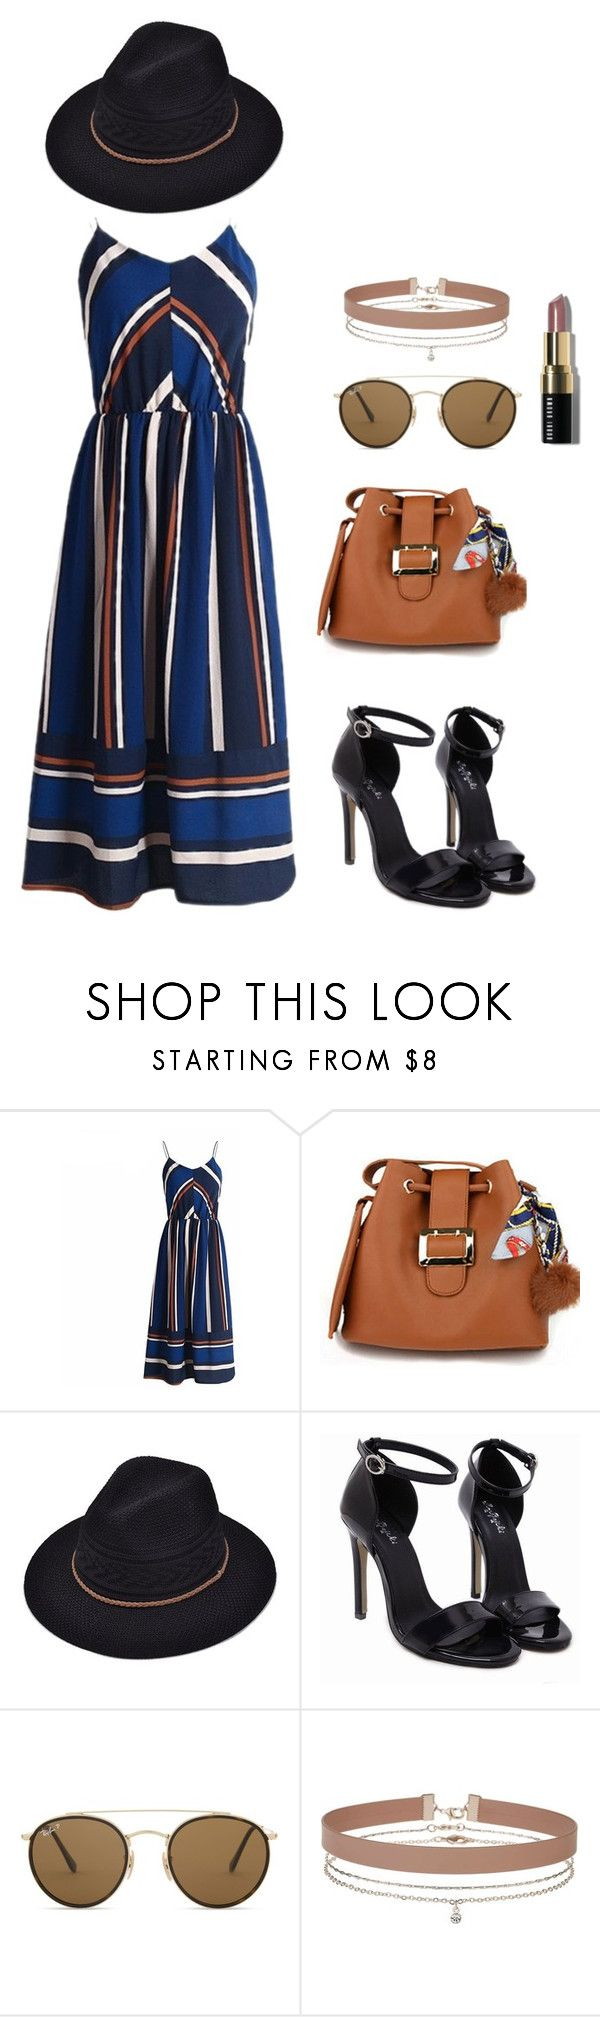 Summer dresses love #1 by impavidgirl on Polyvore featuring Miss Selfridge, Ray-Ban and Bobbi Brown Cosmetics